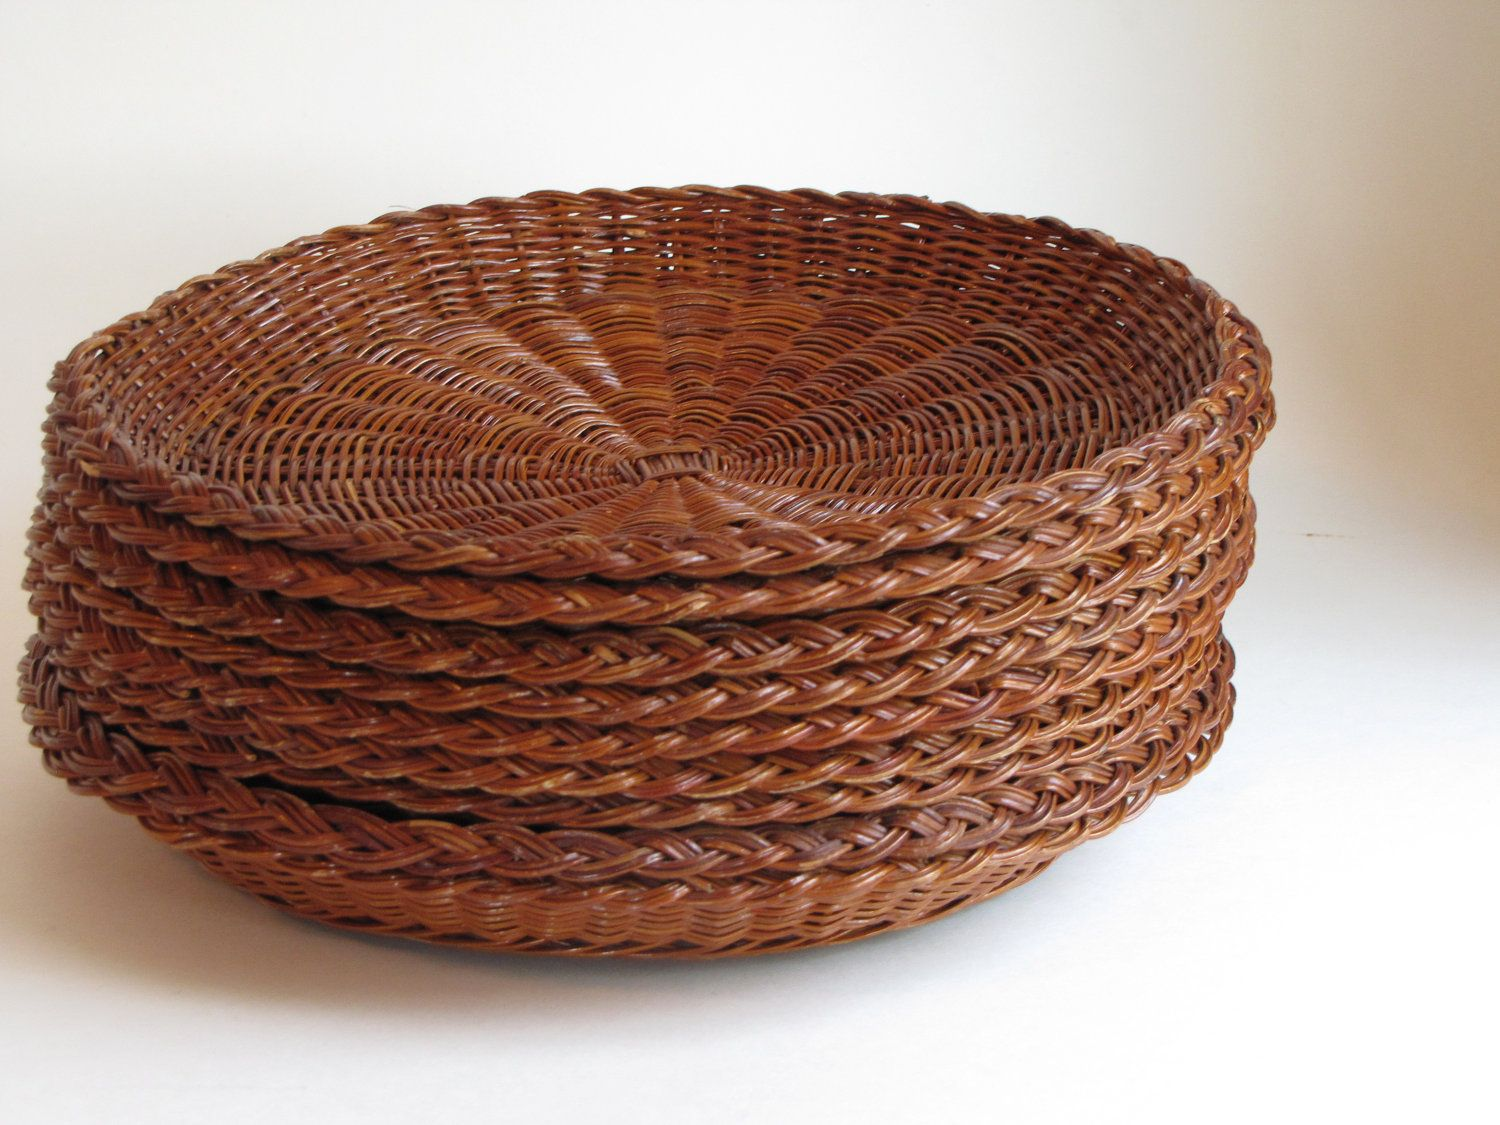 Image result for wicker paper plate holders & Image result for wicker paper plate holders | A Chefs Dream Kitchen ...